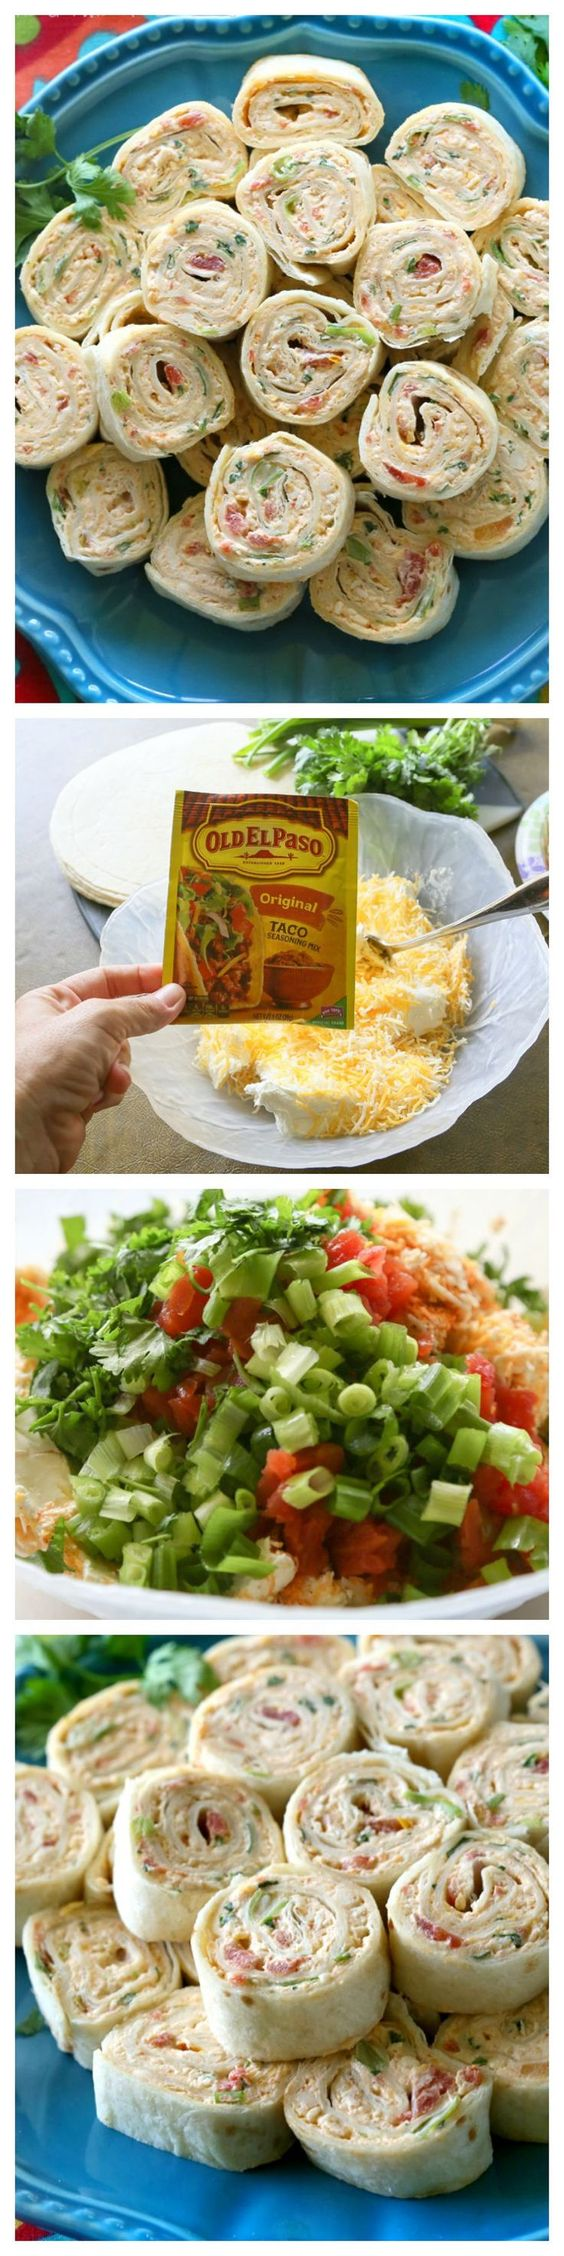 These Chicken Enchilada Roll Ups are a great appetizer for parties! Easy to make ahead and easy to serve. the-girl-who-ate-...: